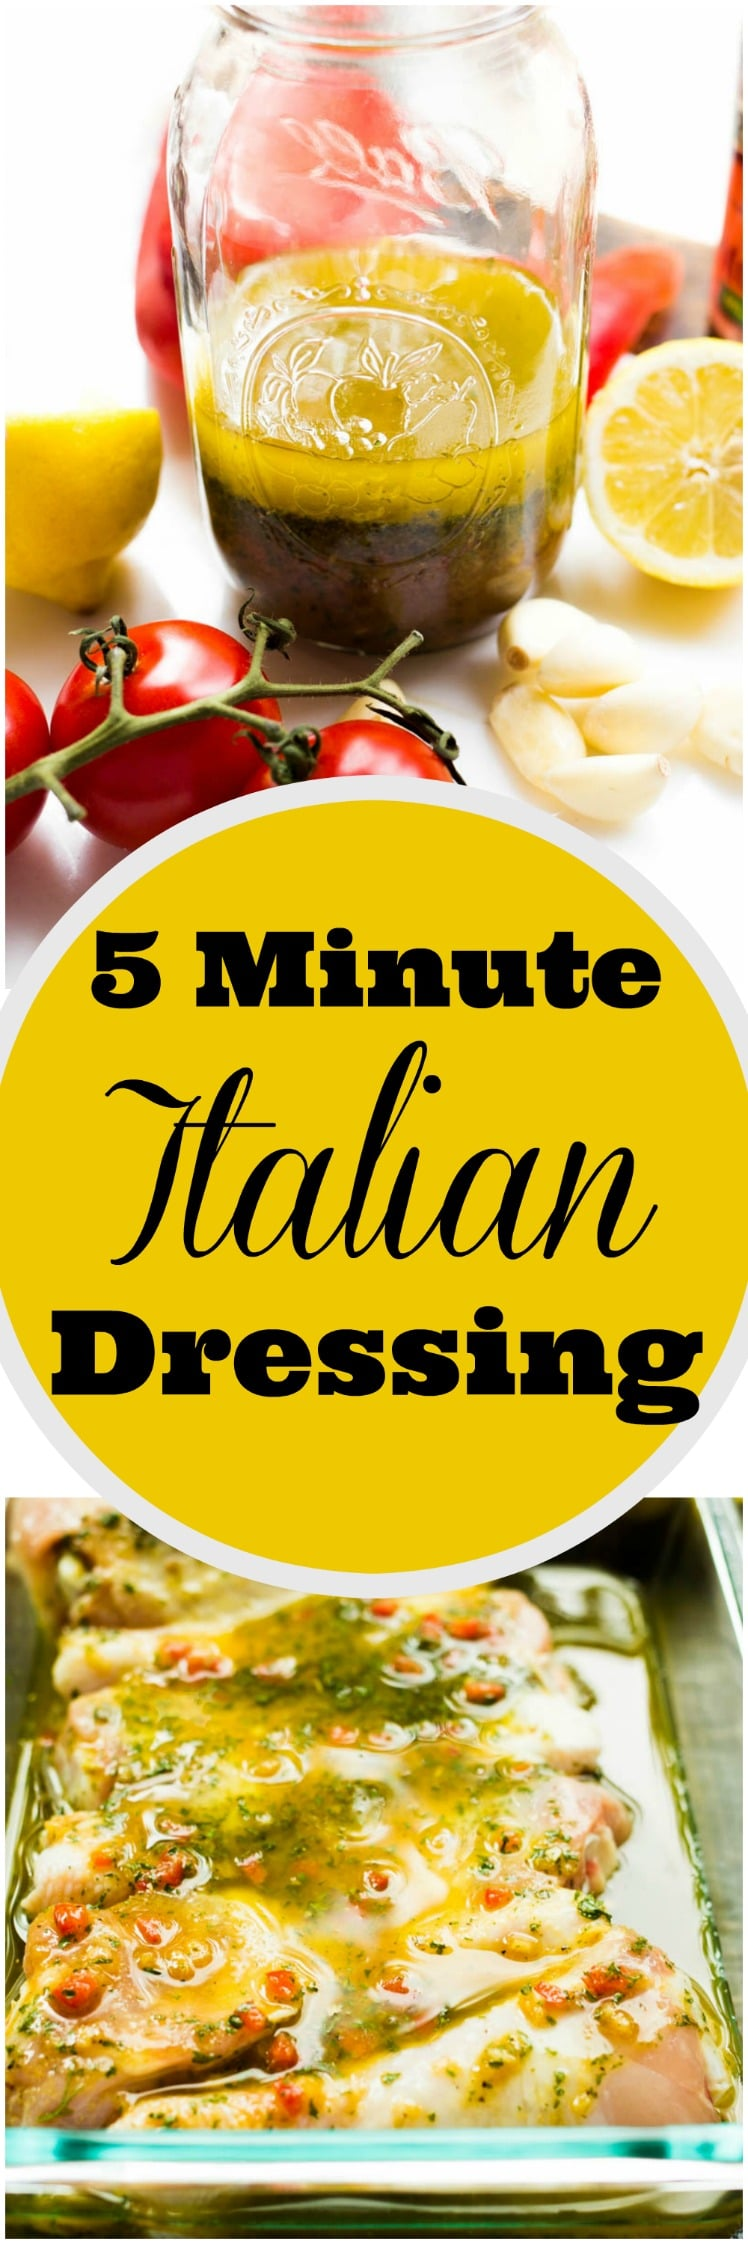 Forget the store-bought, bottled stuff! Create your own homemade Italian dressing in only 5 minutes! Preservative free and loaded with flavor! Perfect as a topper for crunchy greens or as a marinade for chicken or grilled veggies!